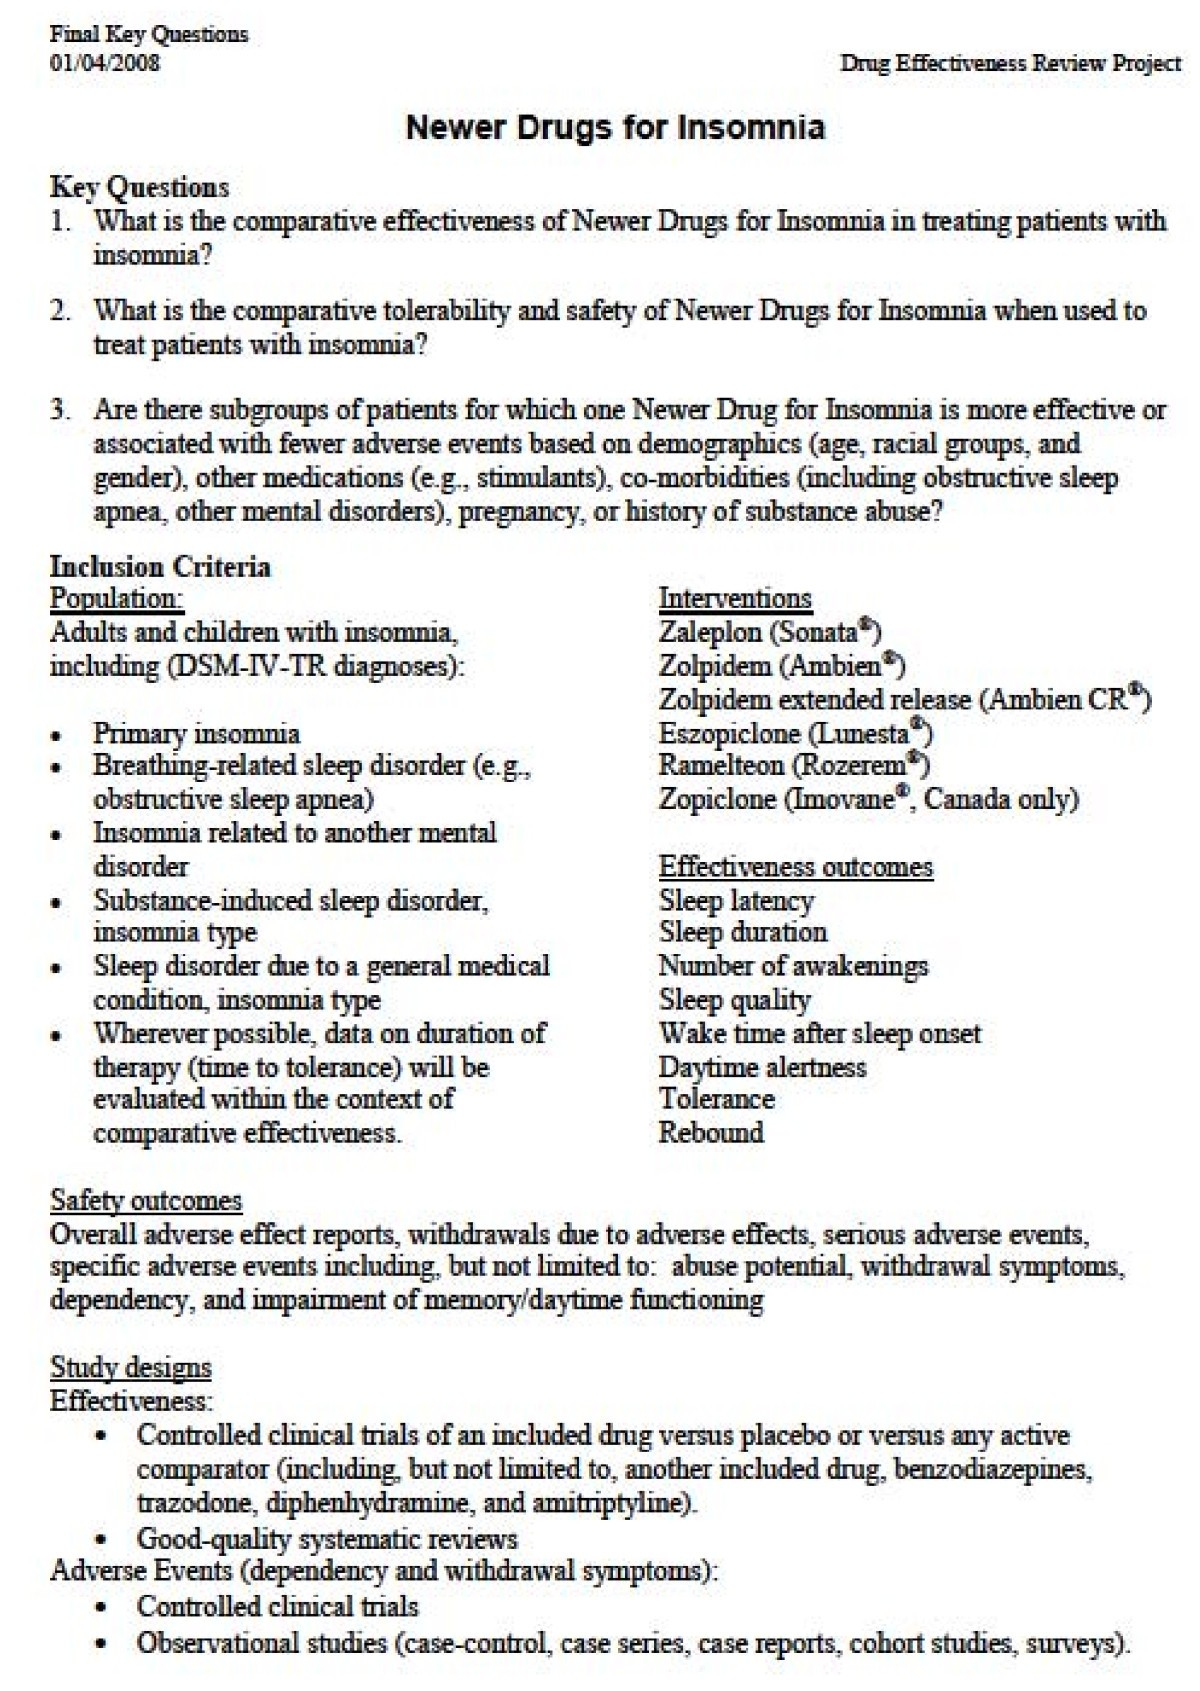 Methods For The Drug Effectiveness Review Project